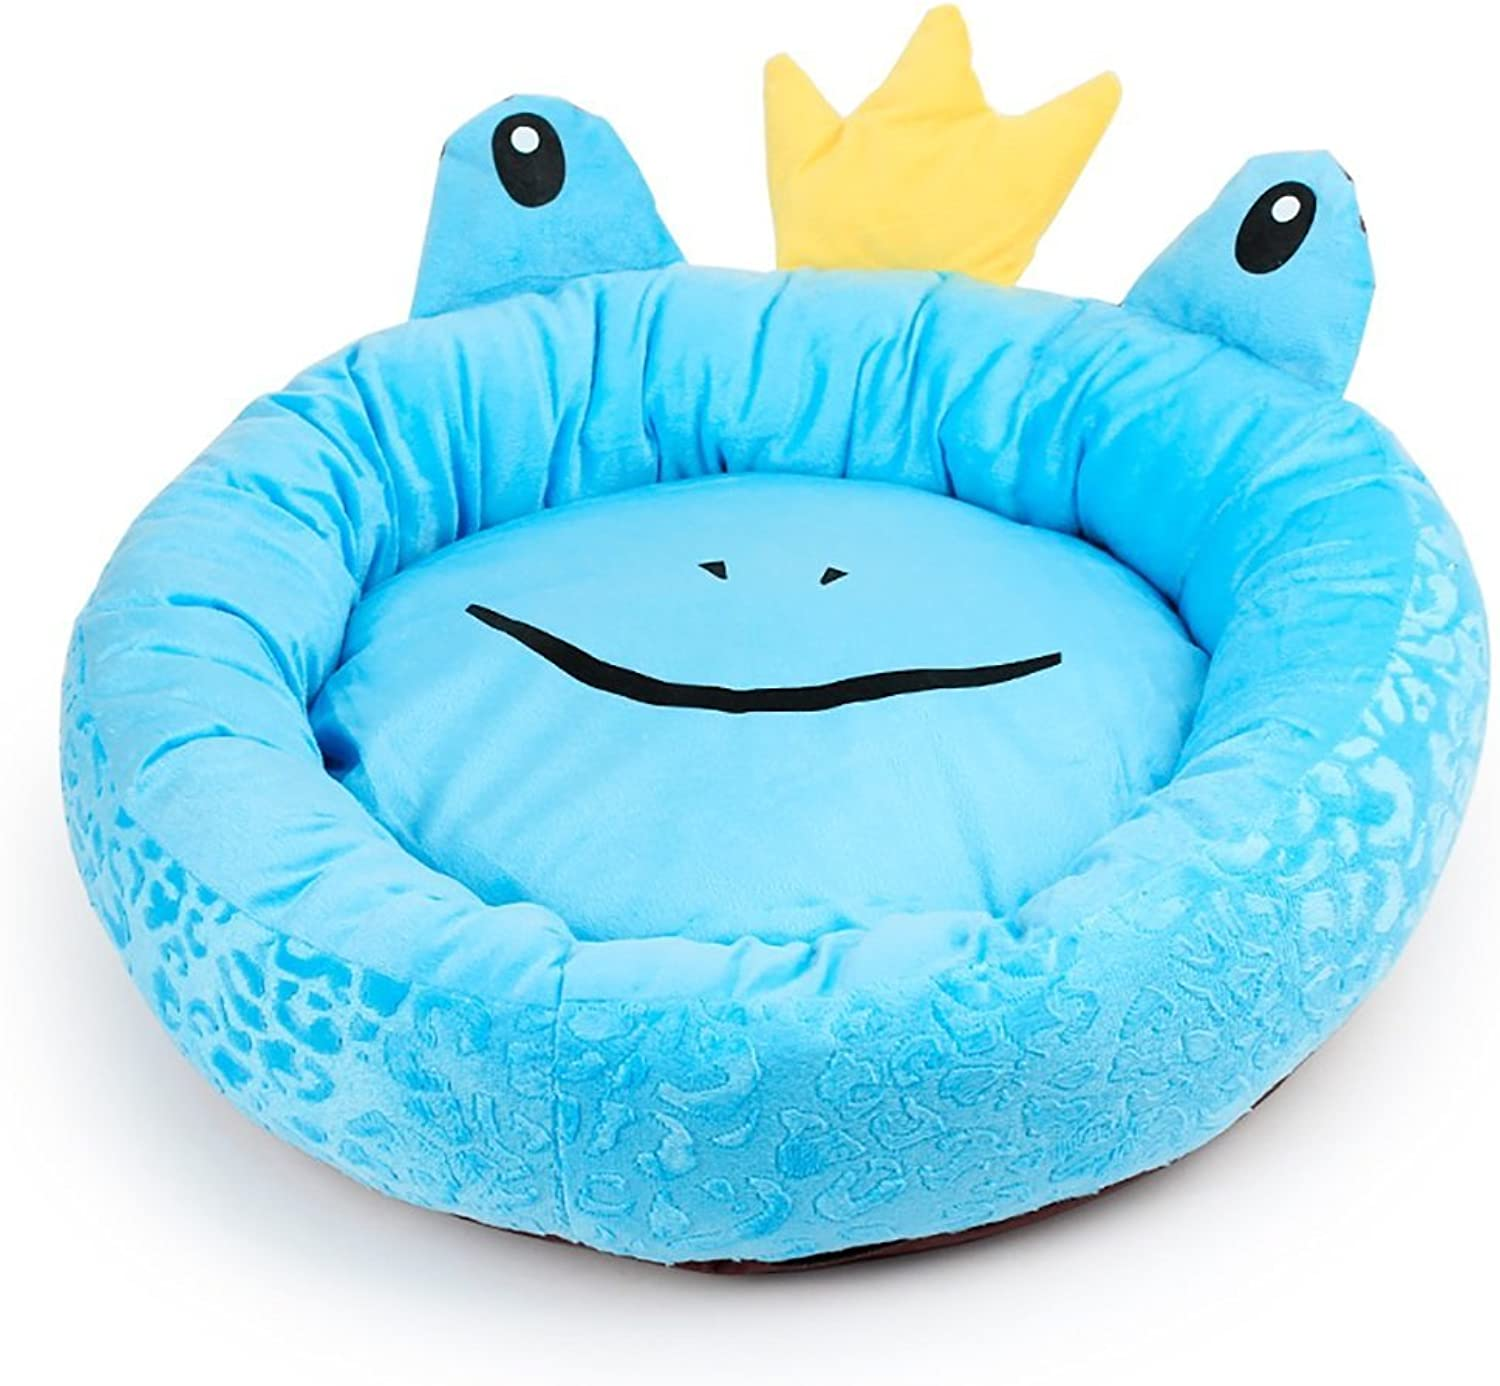 LongYu Pet Nest,Thick Soft Cotton Cute Cartoon Animal Frog Prince Pet Nest Autumn Winter Warm Removable Washable Round Waterloo Dog Bed Cat Bed Mat 4 color & 2 Size (color   bluee, Size   S)